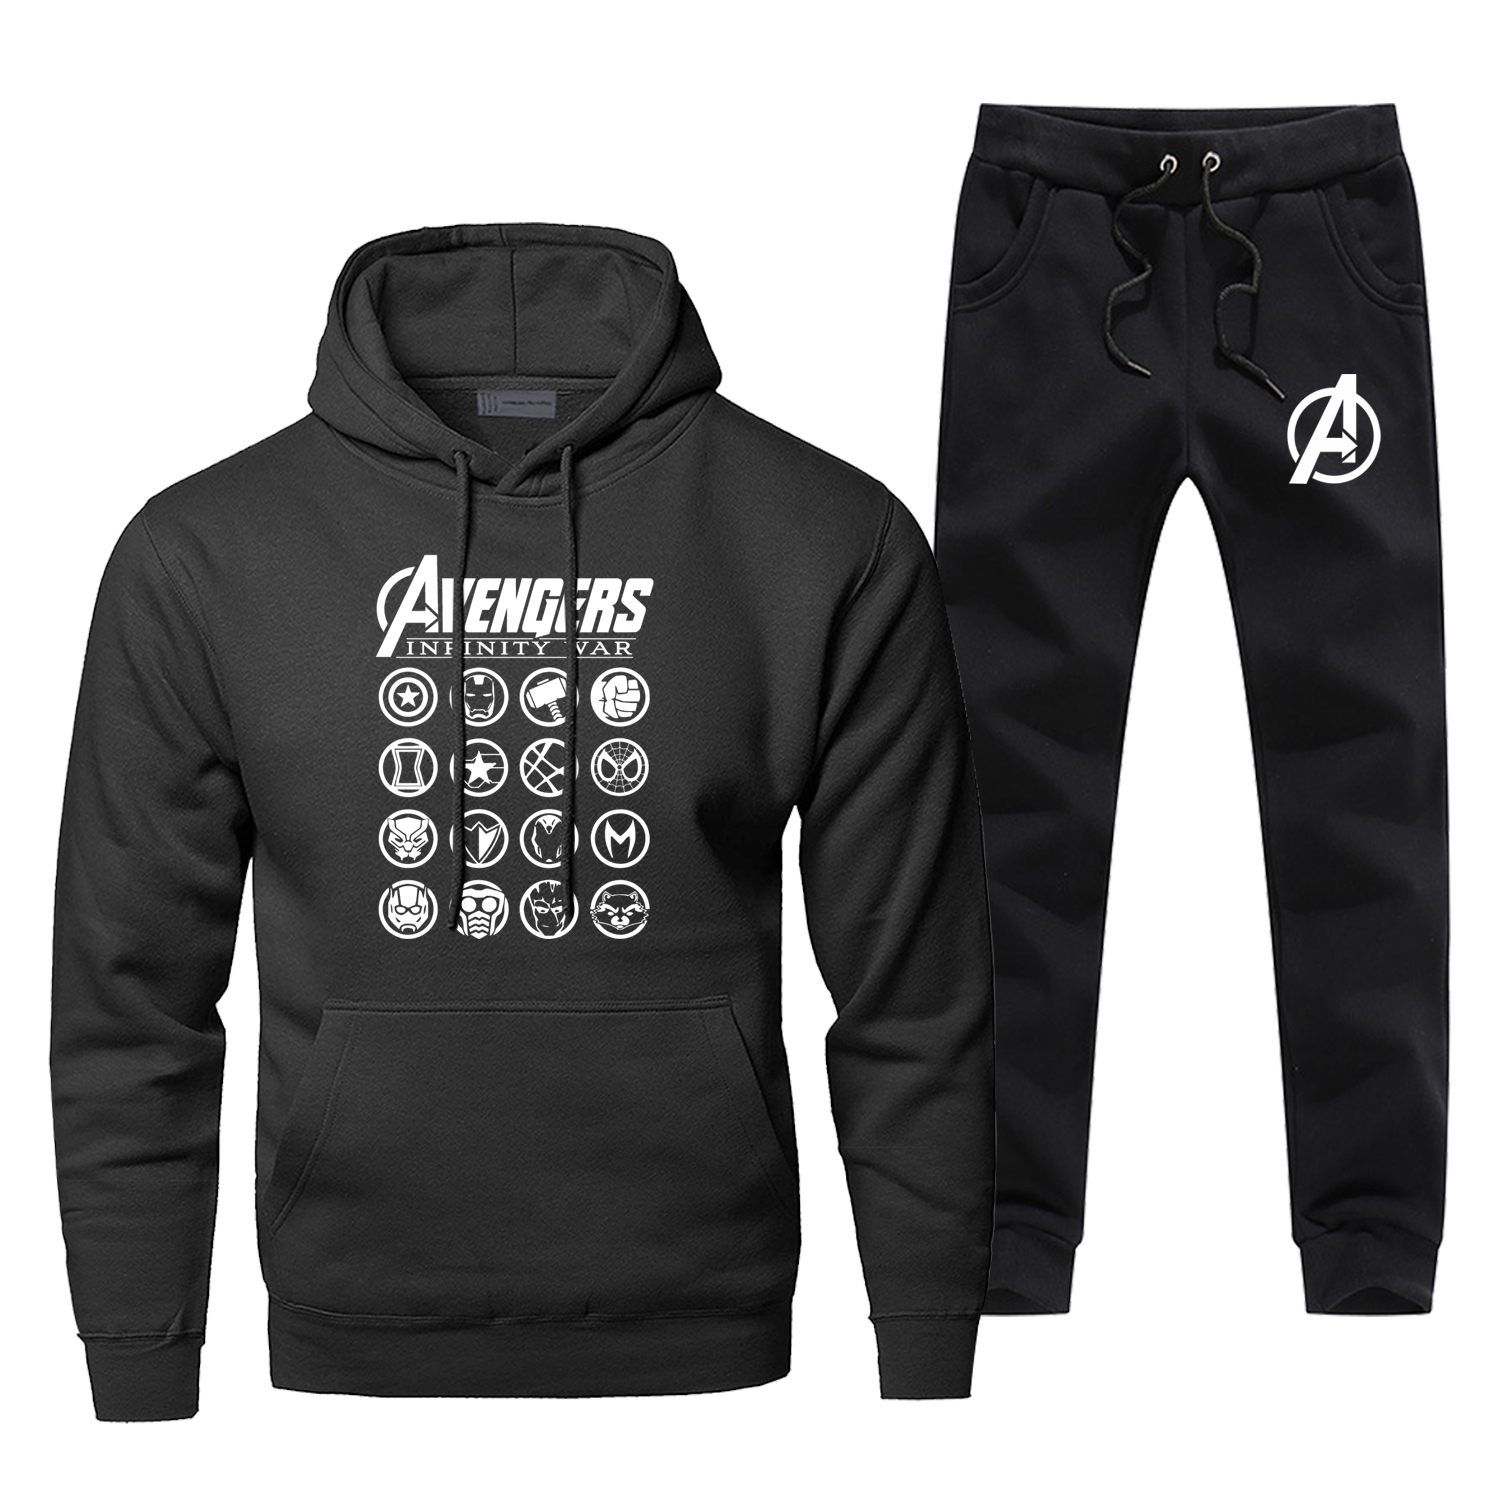 The Avengers Complete Man Tracksuit Iron Man Avengers End Game Men's Jogging Winter Warm Hulk Sweatshirts Pants Casaul Male Set